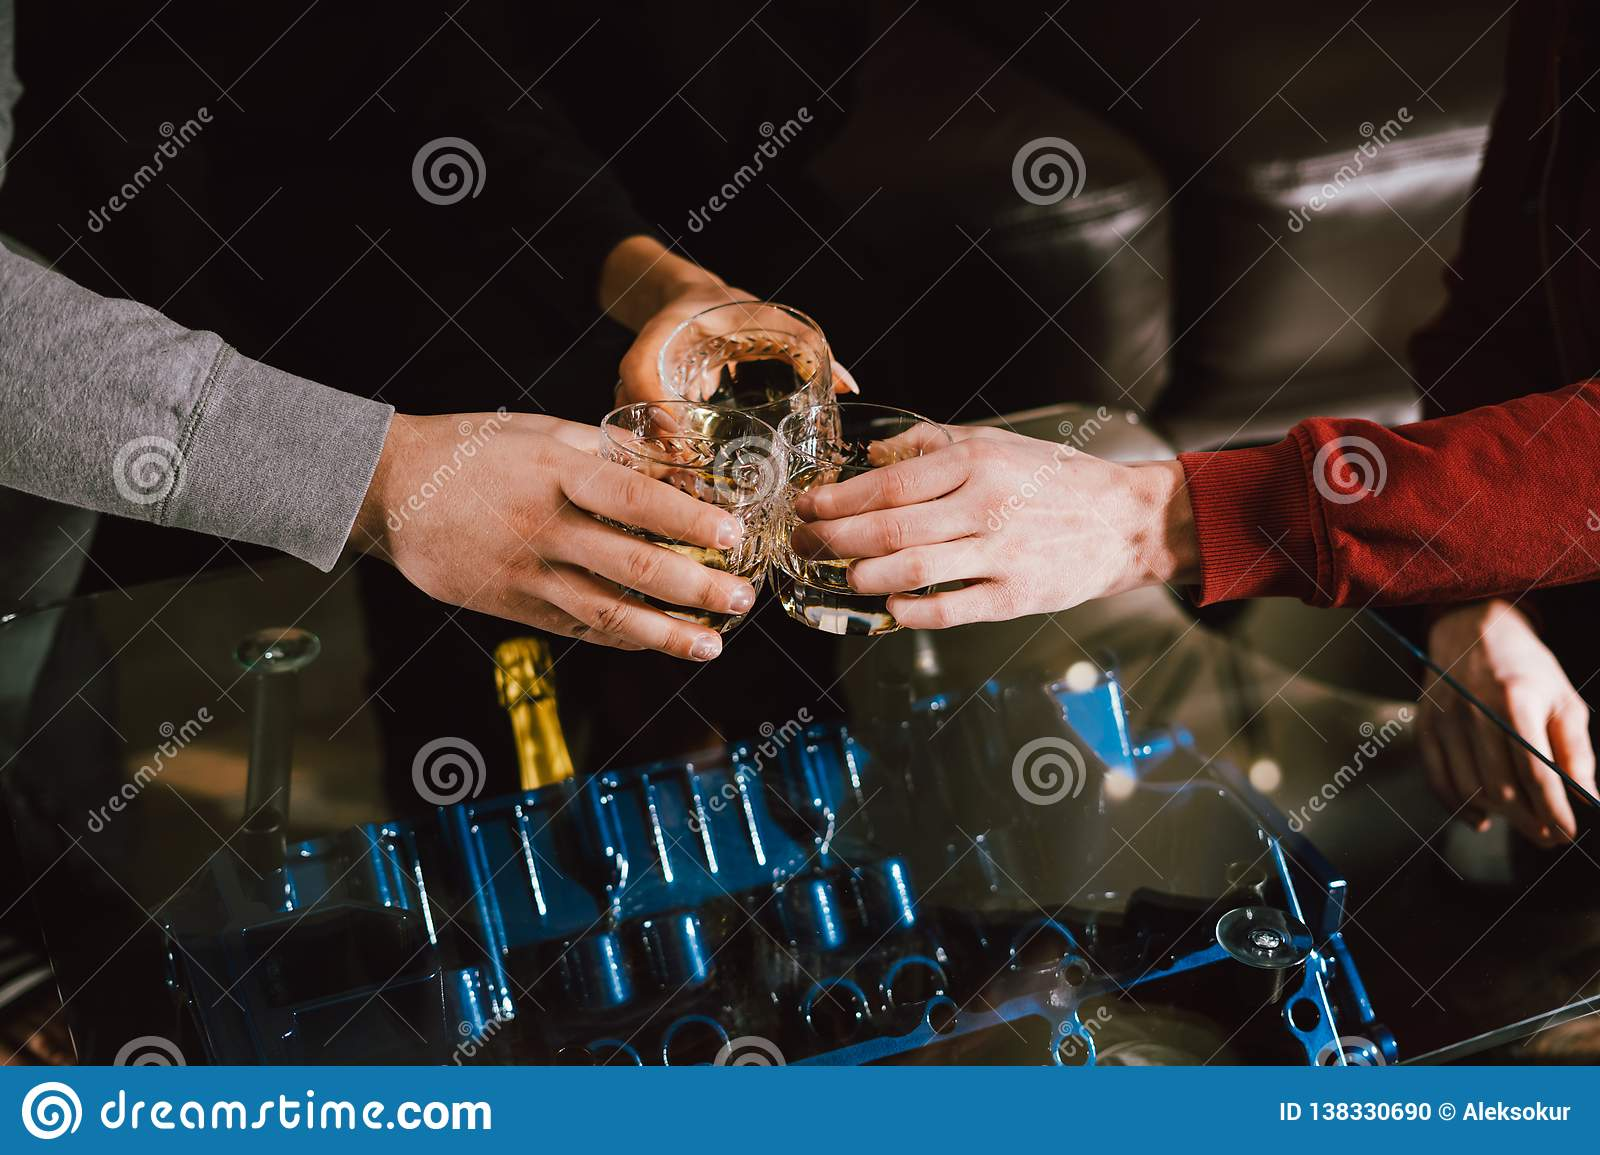 View from the top. Hands of people with glasses of whiskey or wine, celebrating and toasting of the wedding, meeting or other